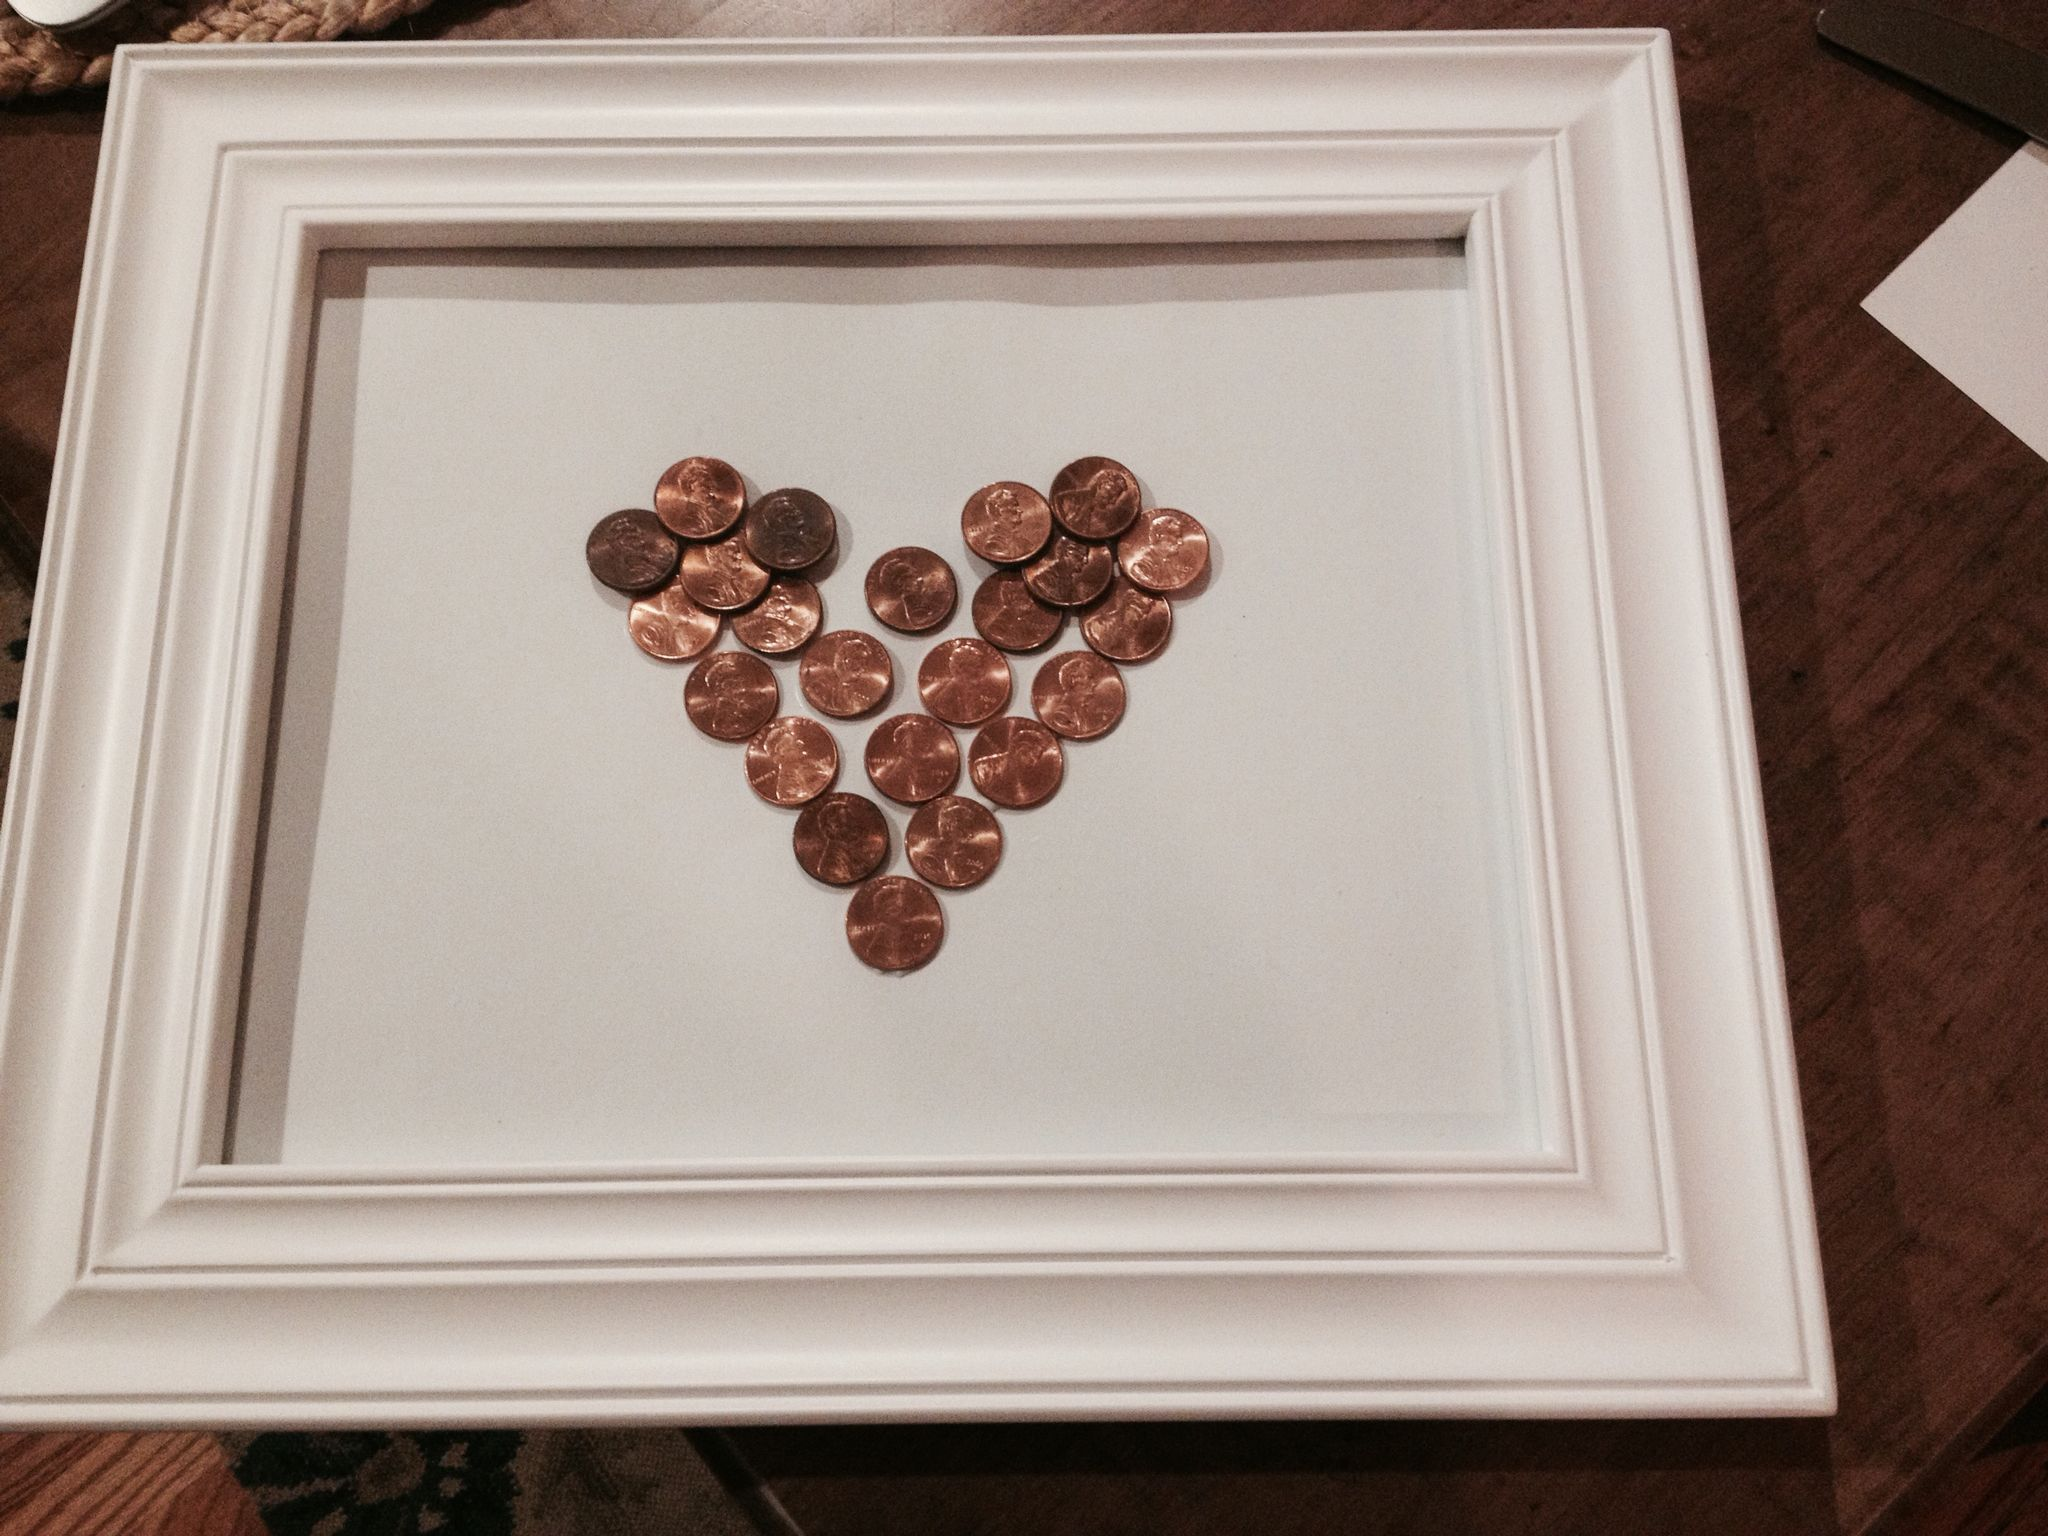 Copper Anniversary Made This For My Husband Our 22nd Wedding Each Penny Is From Of The 22 Years Marriage Very Lucky Pennies